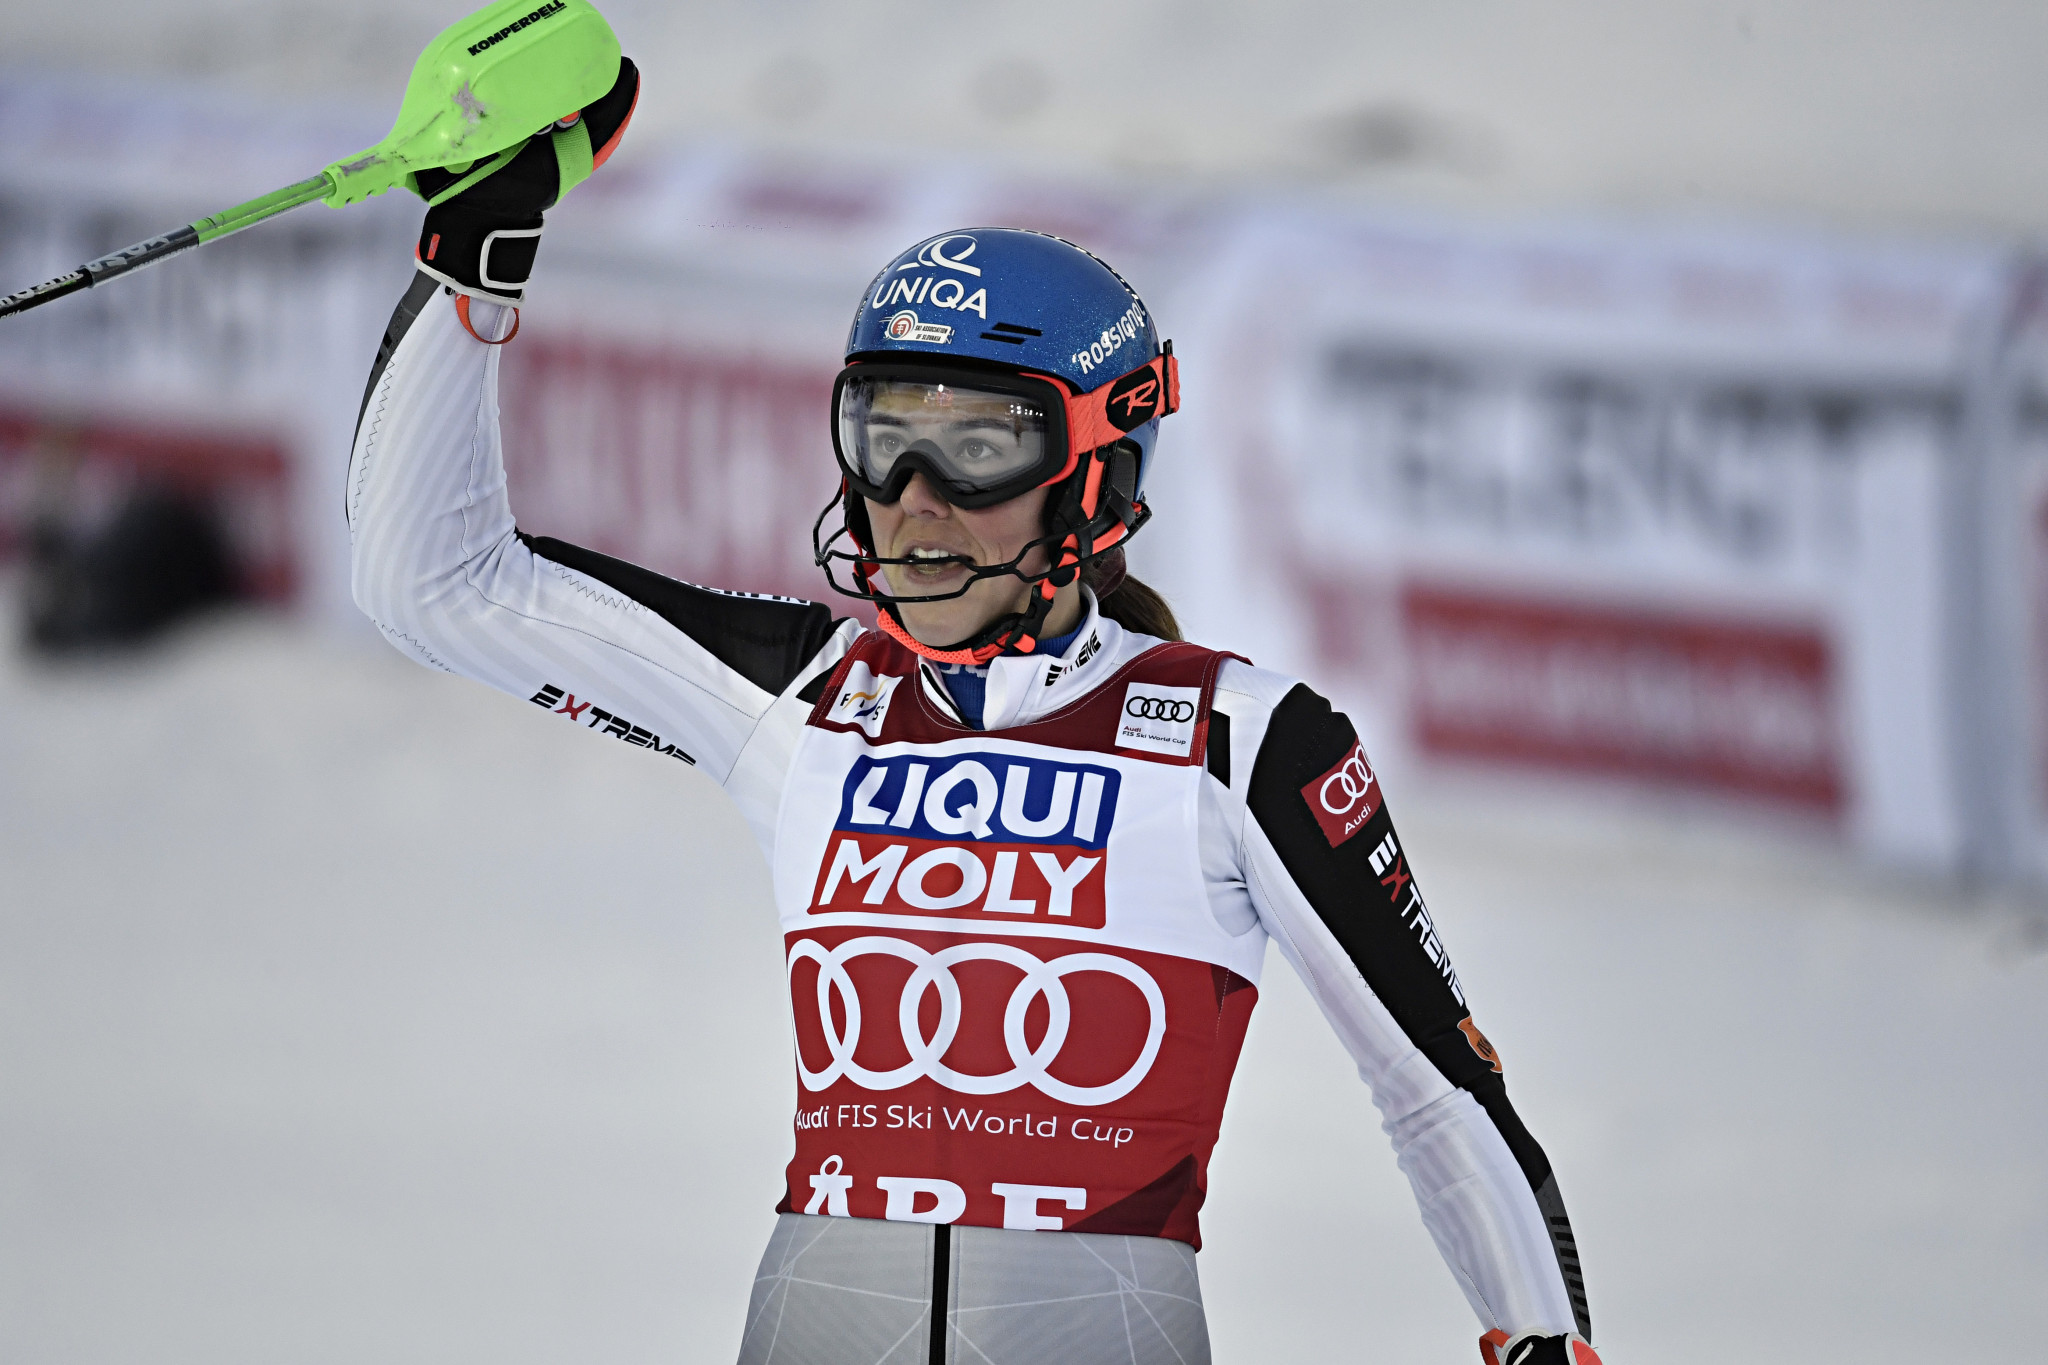 Vlhová takes lead of FIS Alpine Ski World Cup after slalom victory in Åre